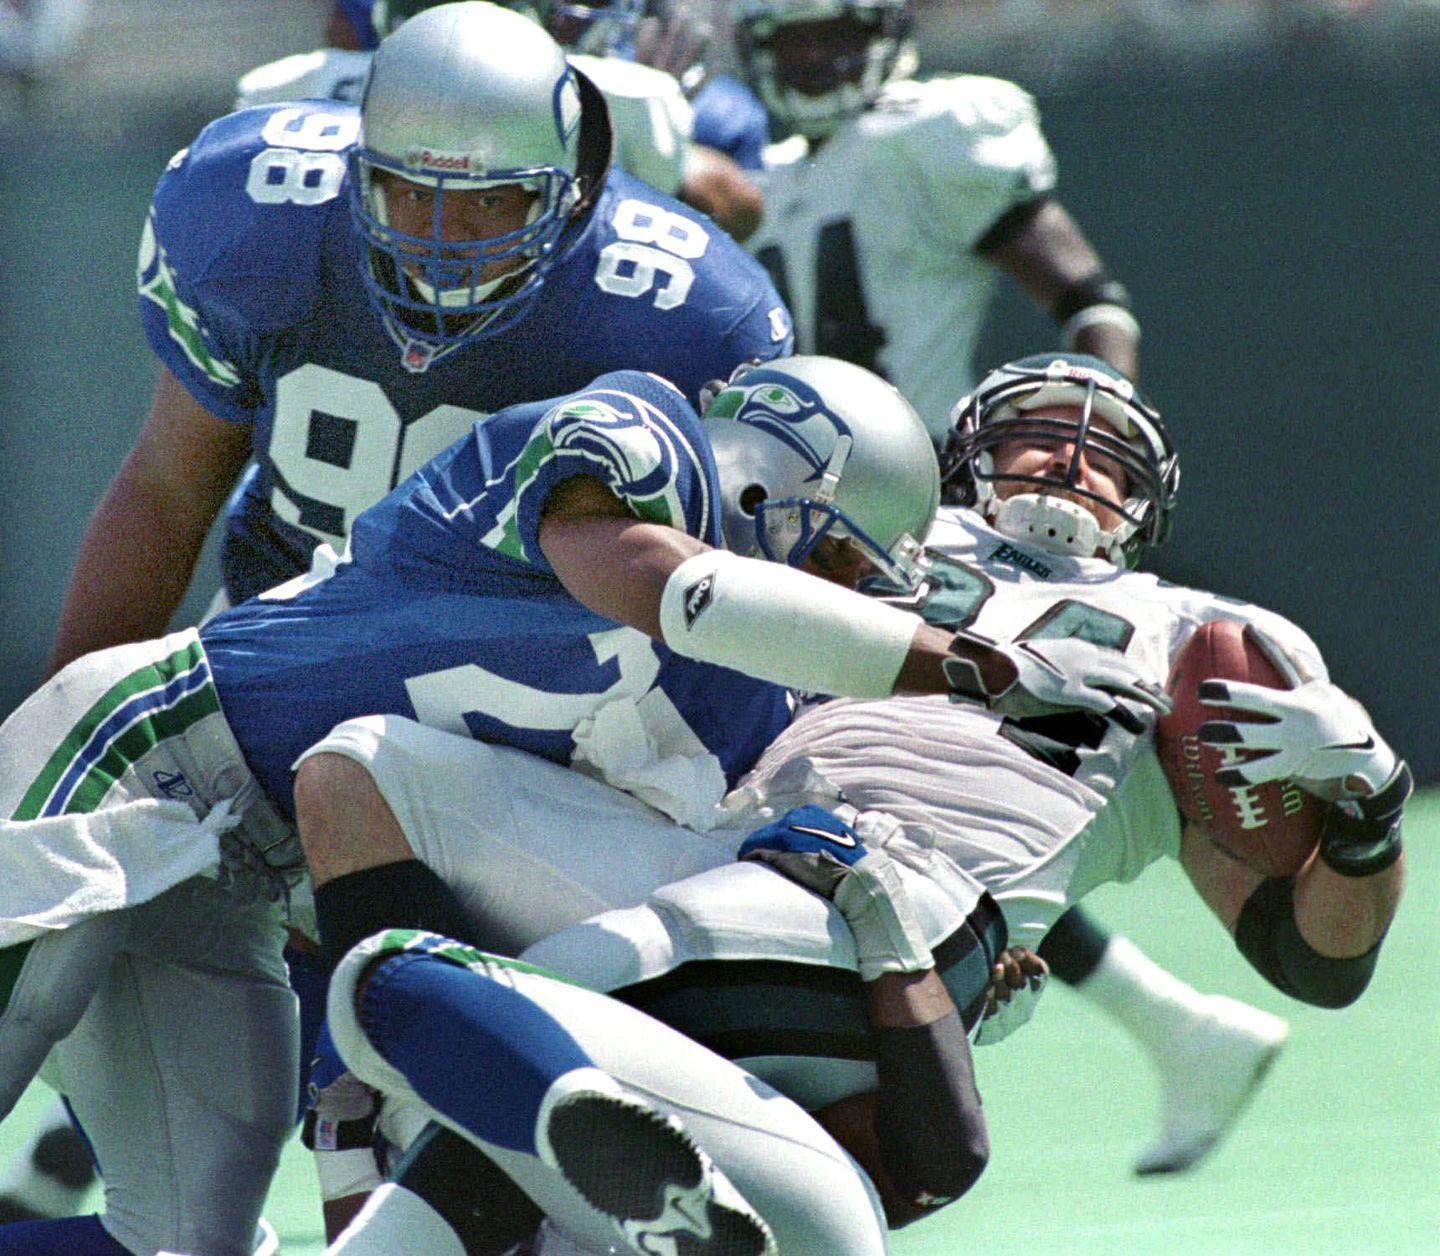 Kevin Turner takes a hit during his days with the Eagles, in a game against the Seattle Seahawks.